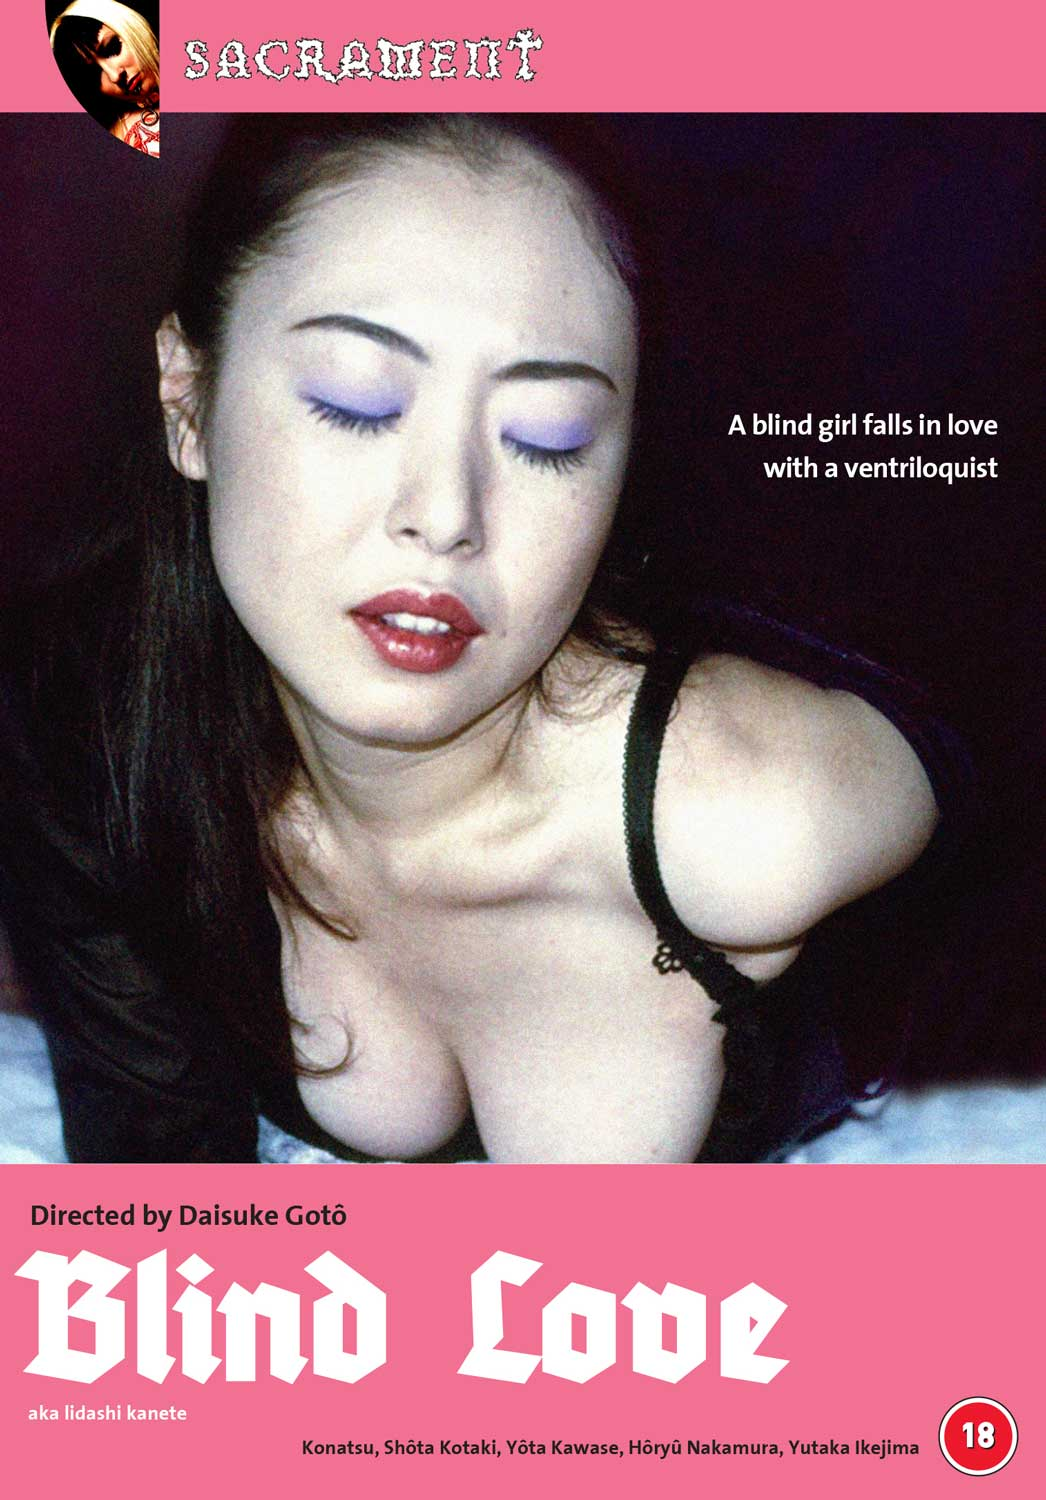 Daisuke Gotô's comedy of errors, a great inrtoduction to the Pinku genre